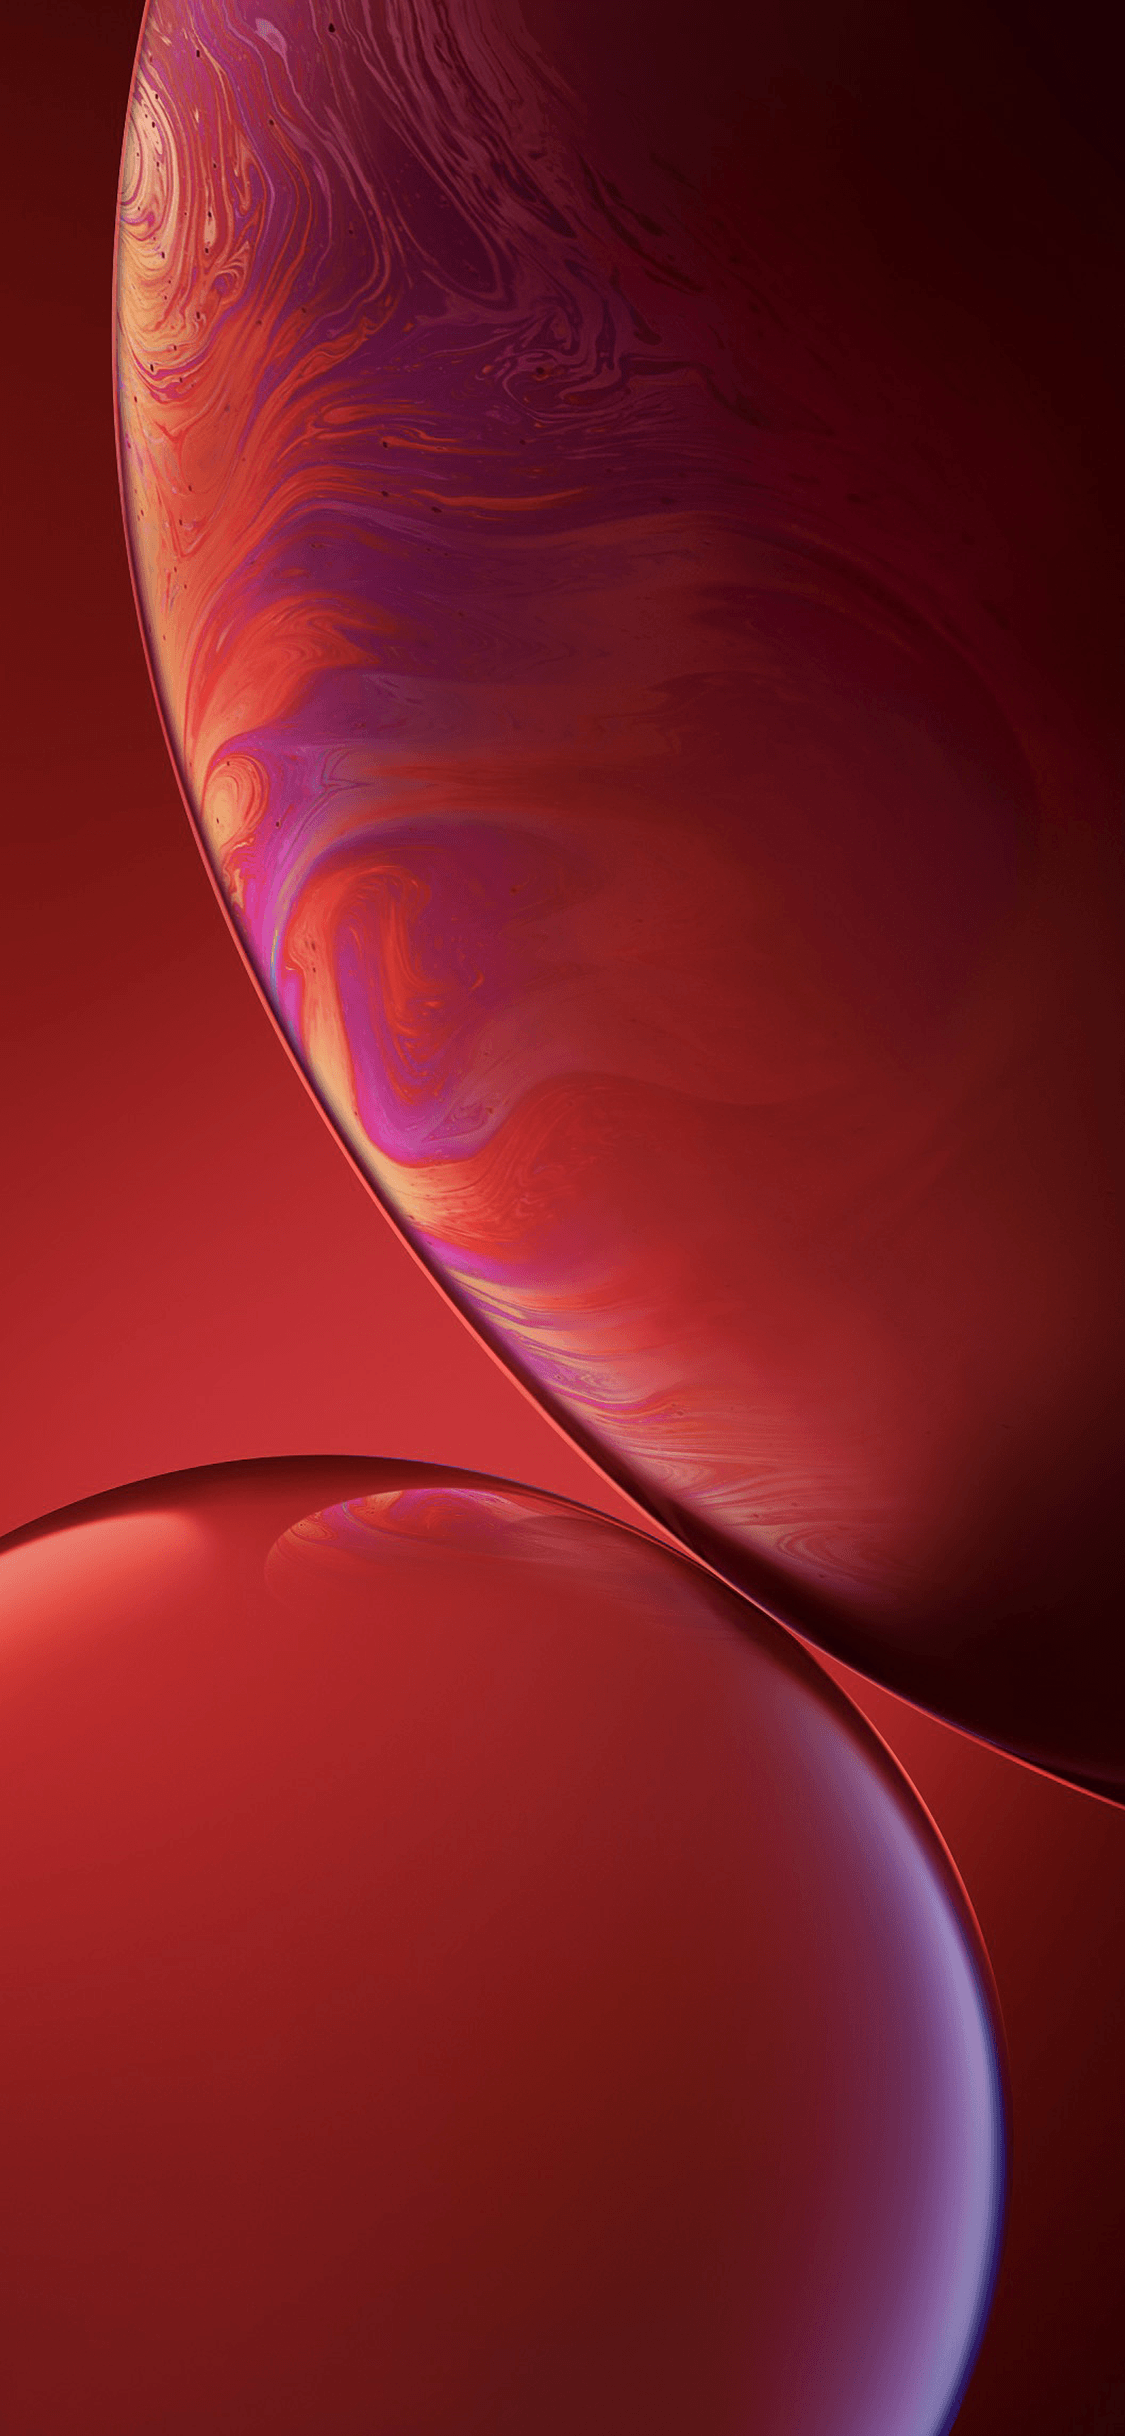 Iphone Xr Wallpapers Top Free Iphone Xr Backgrounds